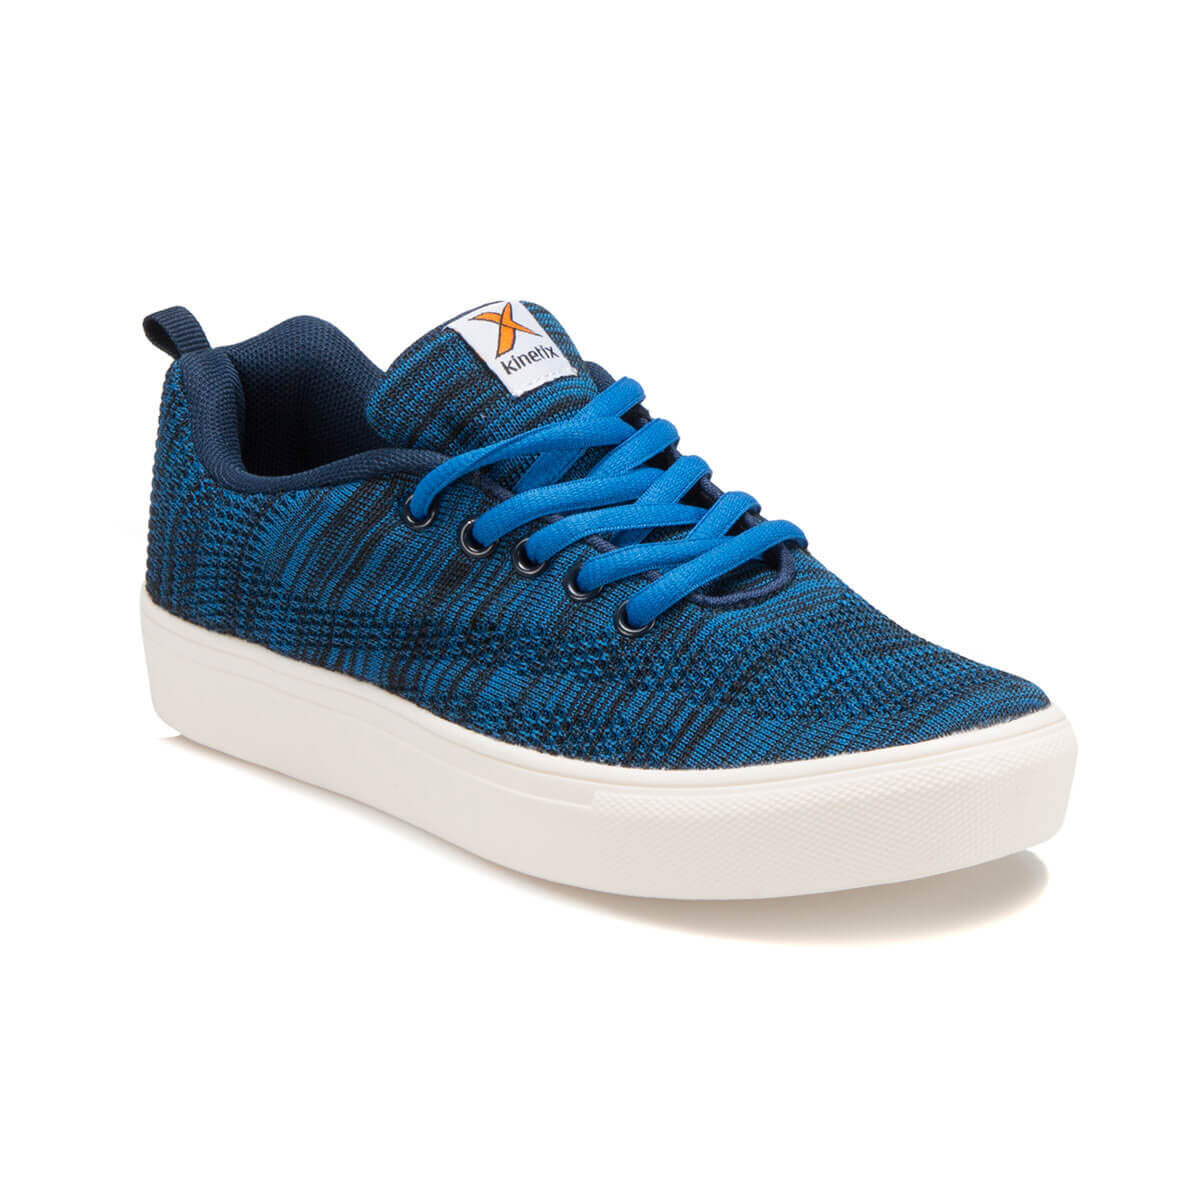 FLO A1288610 Blue Women 'S Sneaker Shoes KINETIX